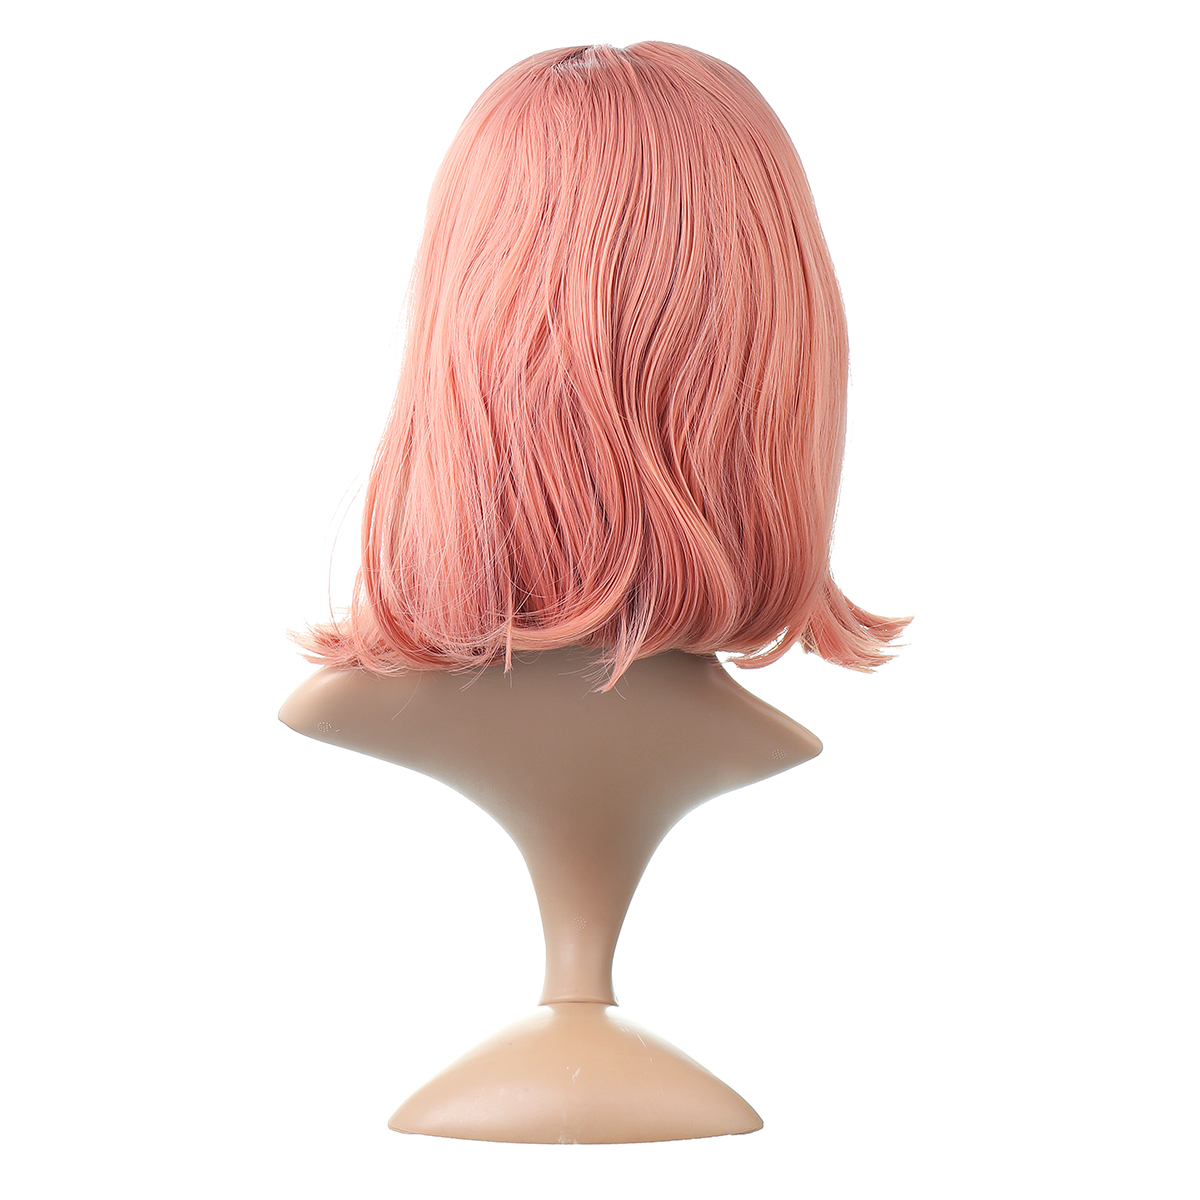 12/14 inch Pink Bob Lace Front Wig Human Hair Pre Plucked Blonde Grey Green Ombre Short Bob Wigs